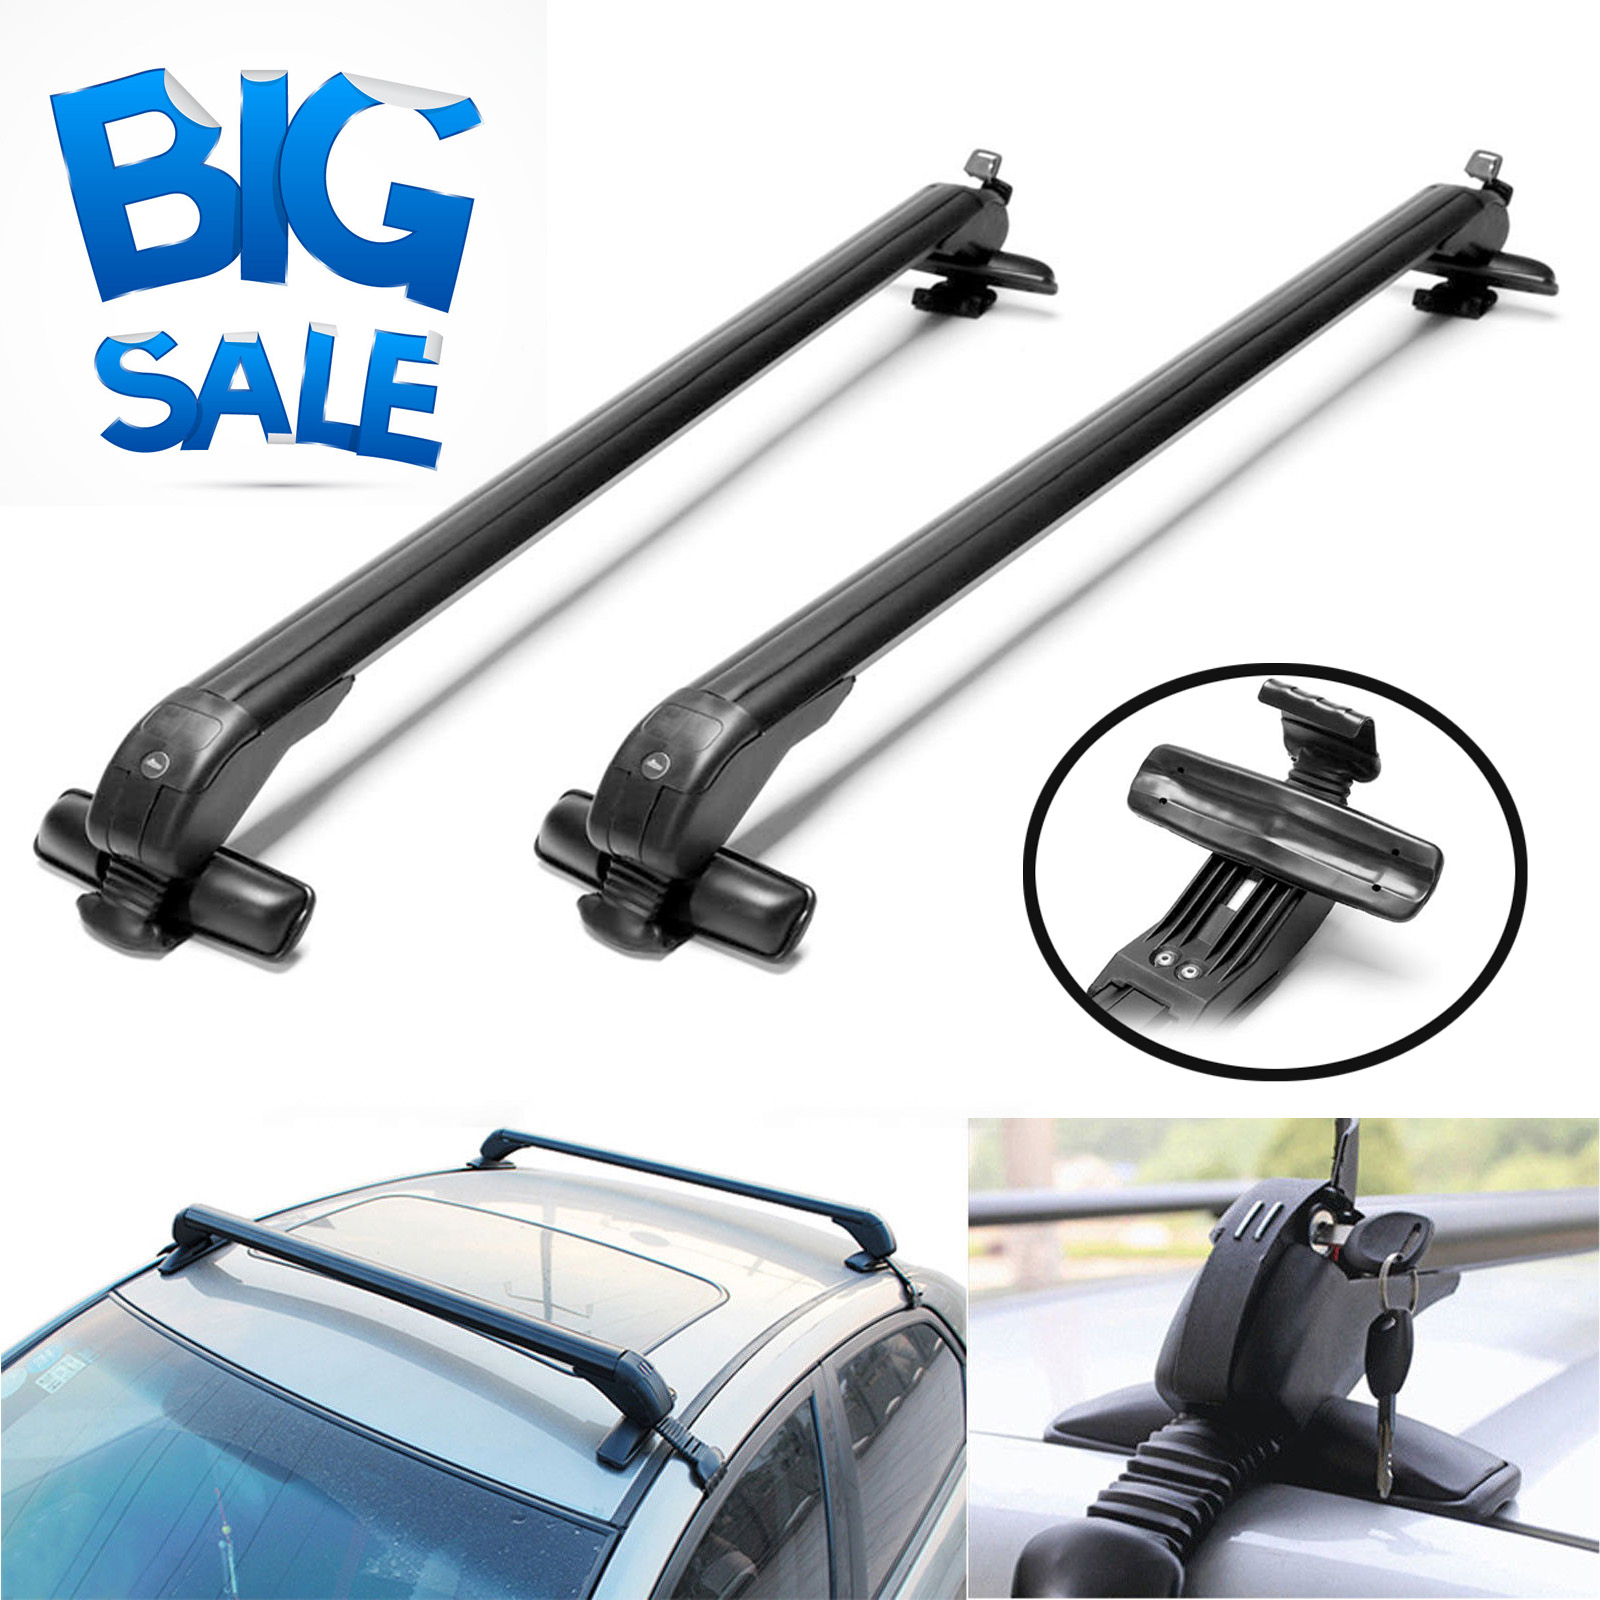 Universal Roof Rack Cross Bar Anti-Theft for 4 or 5 Door Car No Rail 43/'/' Newest